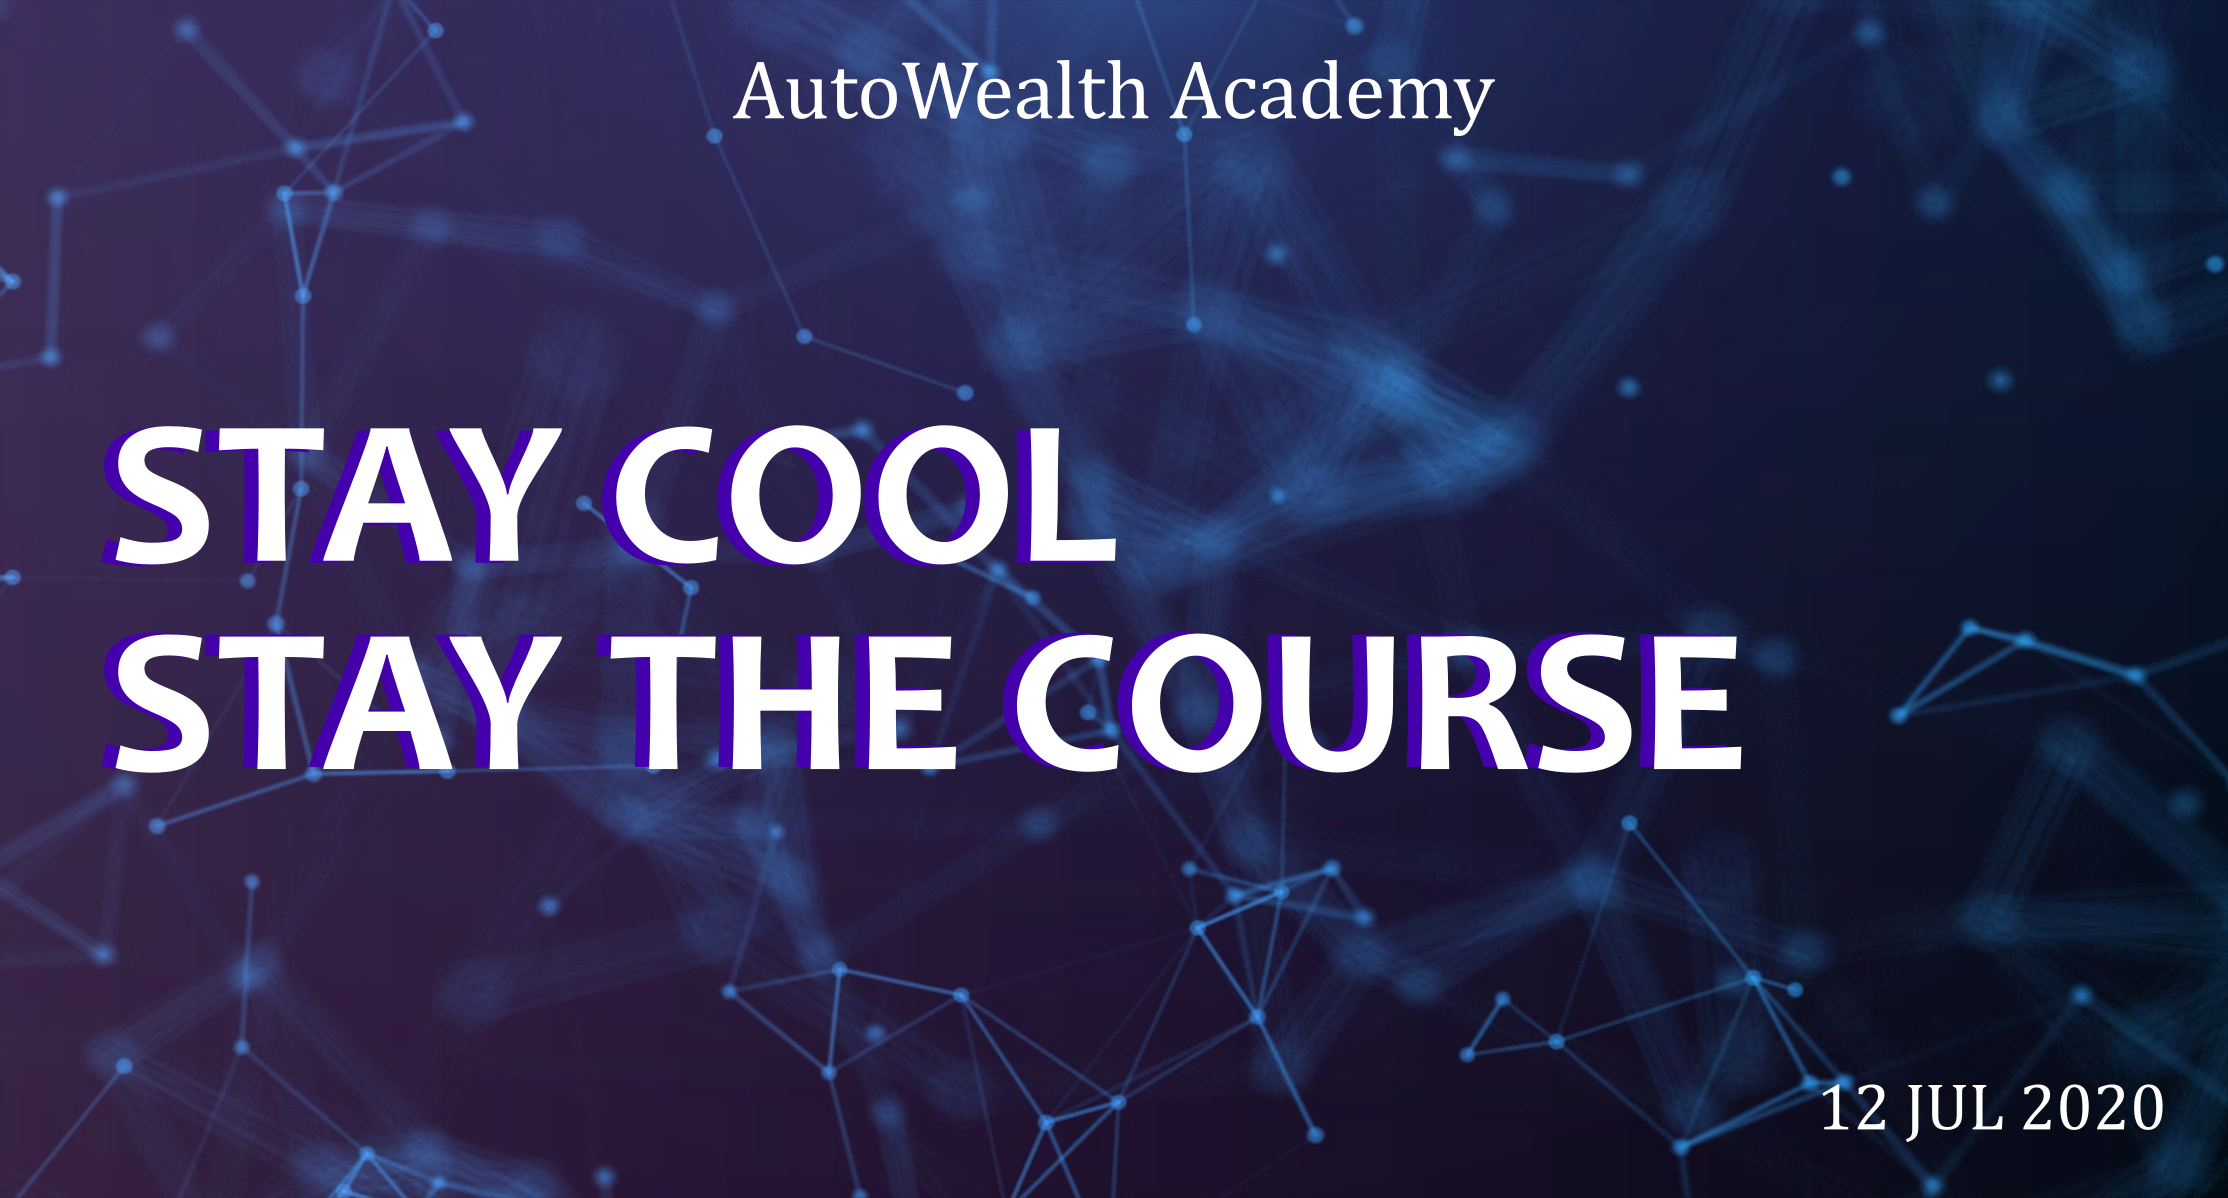 Stay Cool Stay The Course